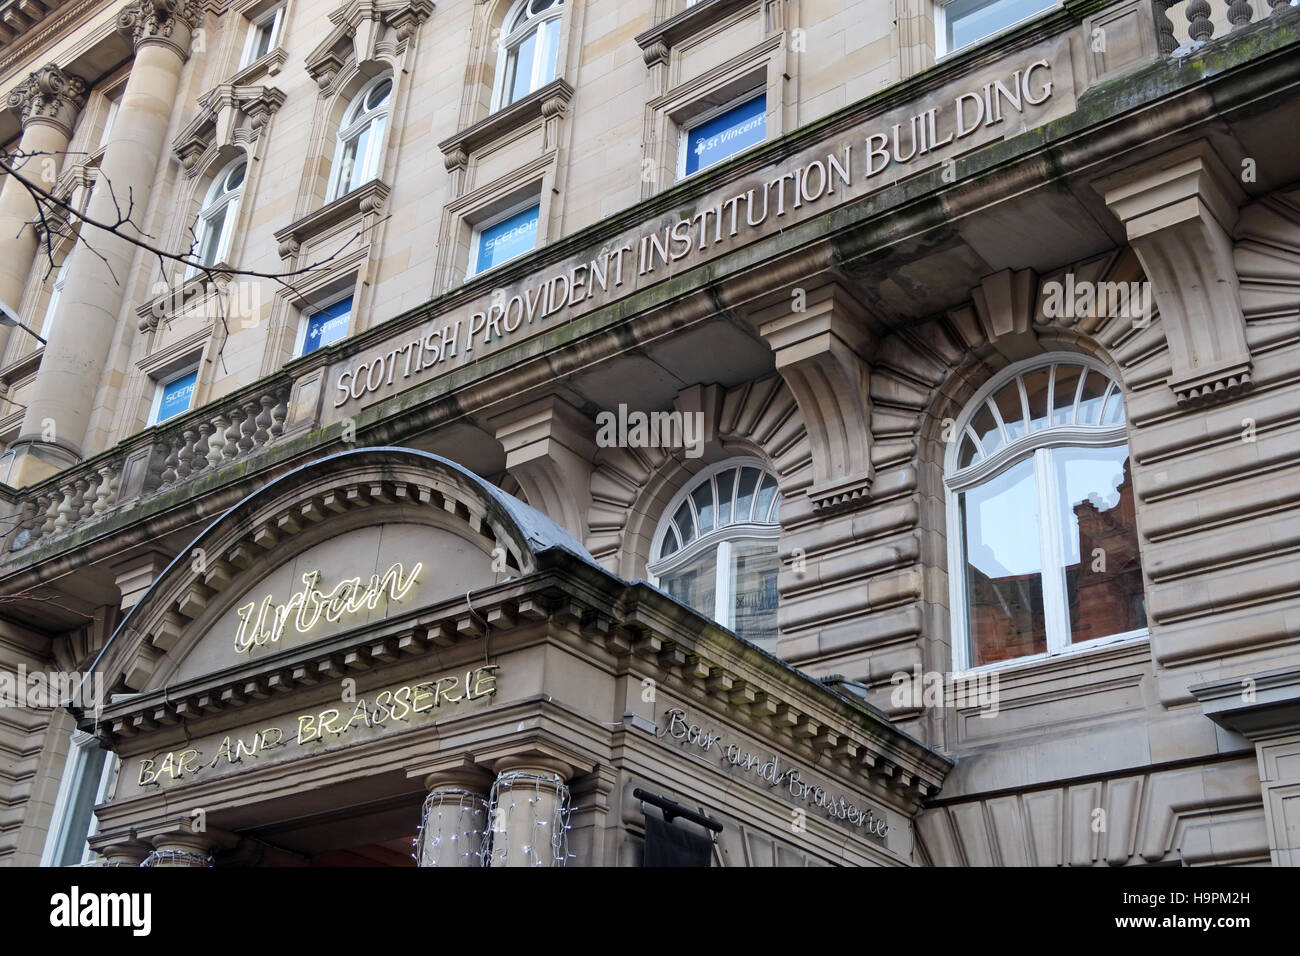 Scottish provincial institution building, Glasgow city centre, Scotland - Stock Image